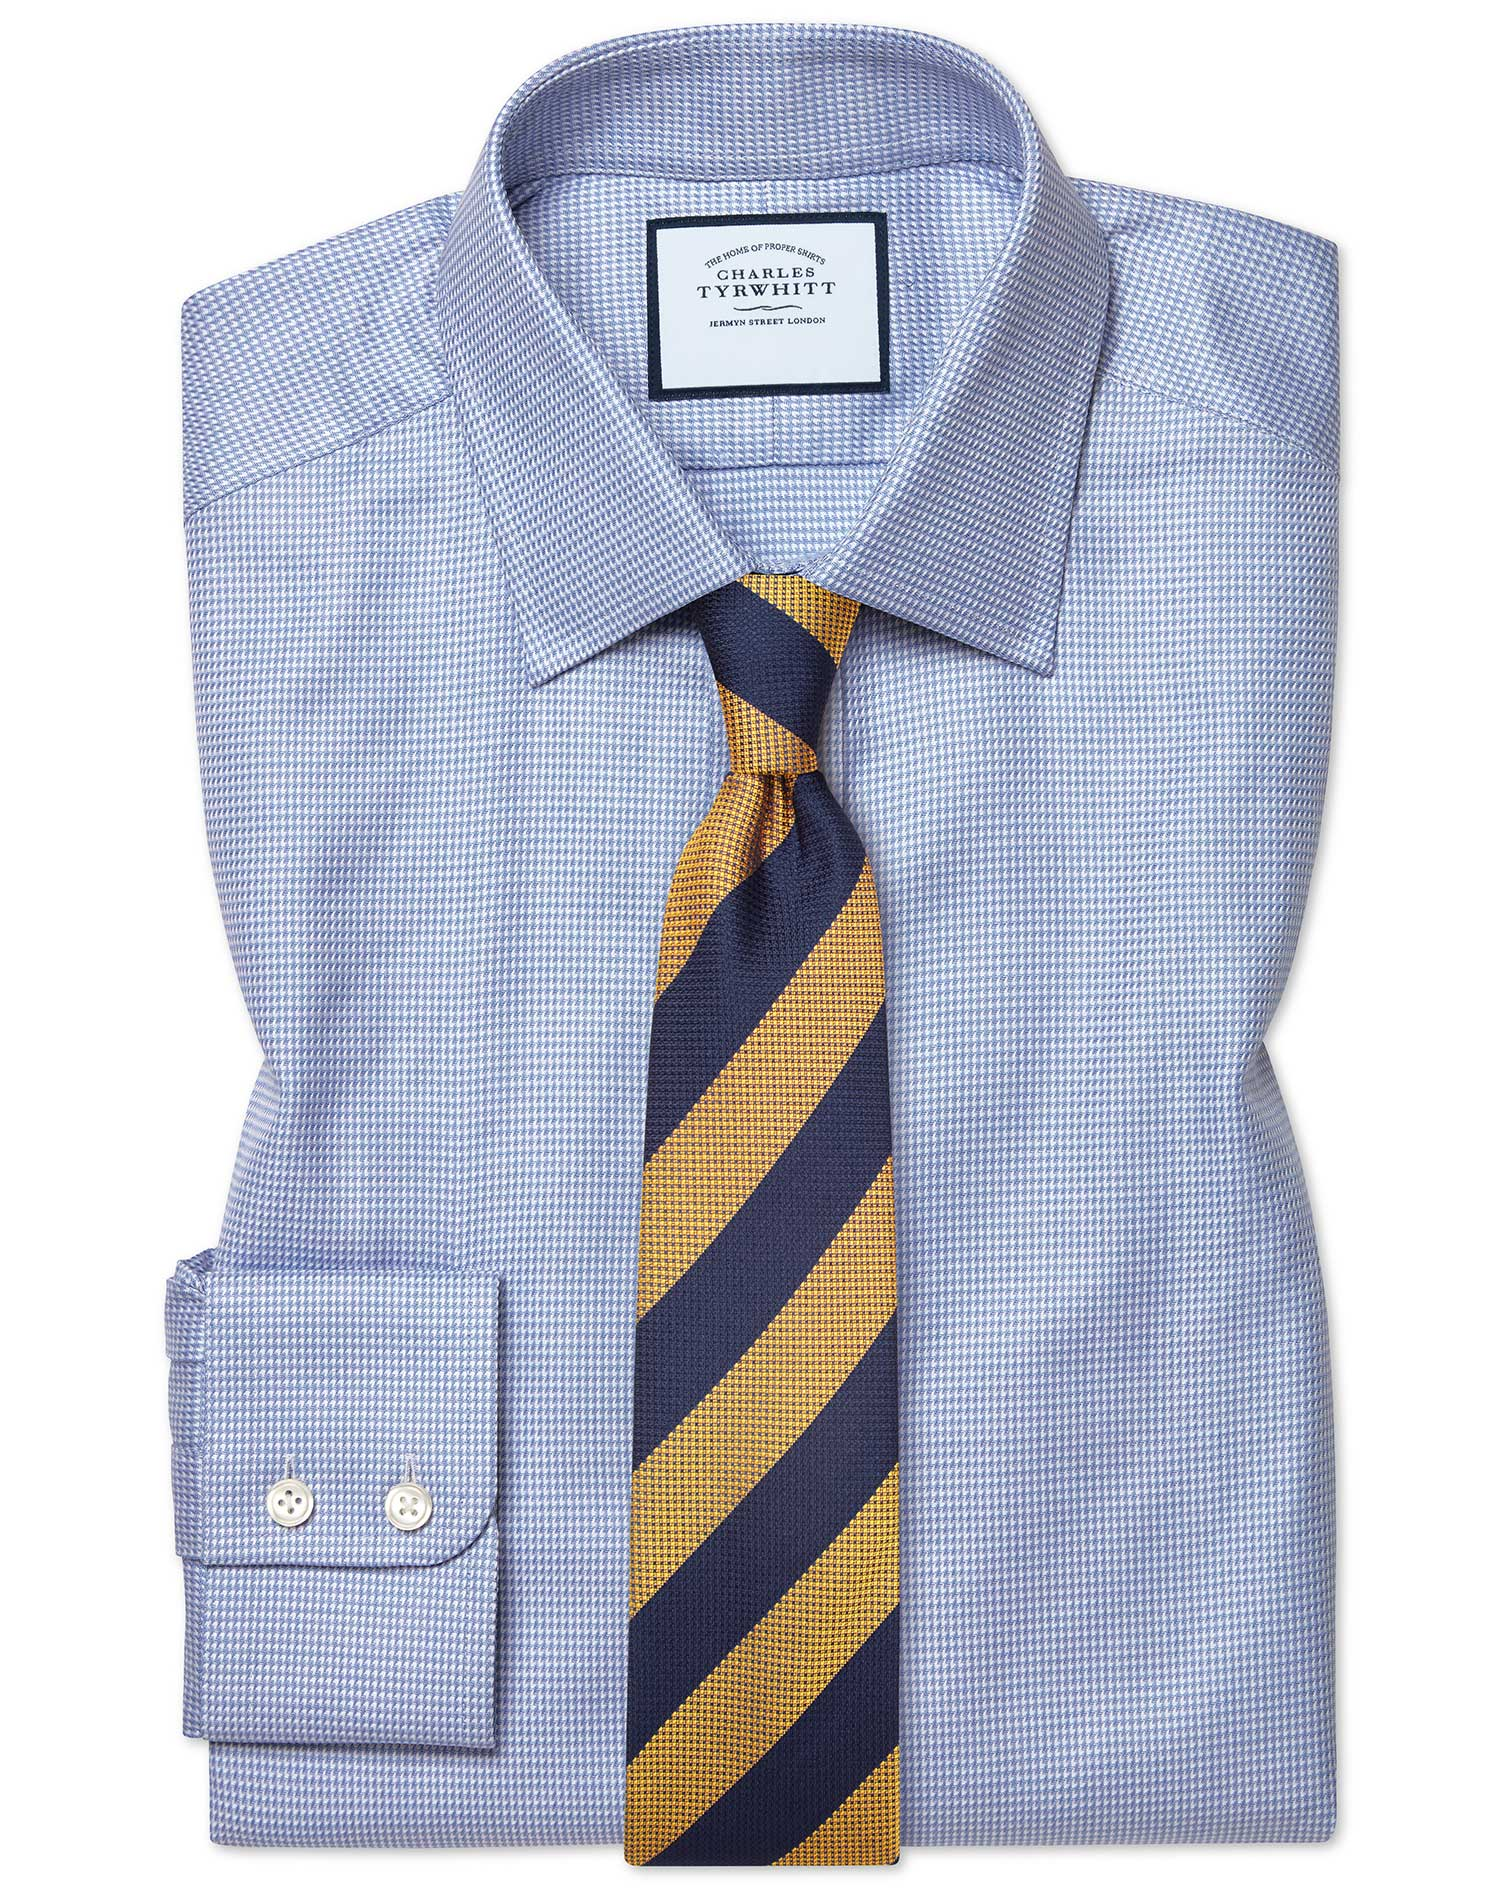 Classic Fit Egyptian Cotton Chevron Sky Blue Formal Shirt Double Cuff Size 15.5/32 by Charles Tyrwhi